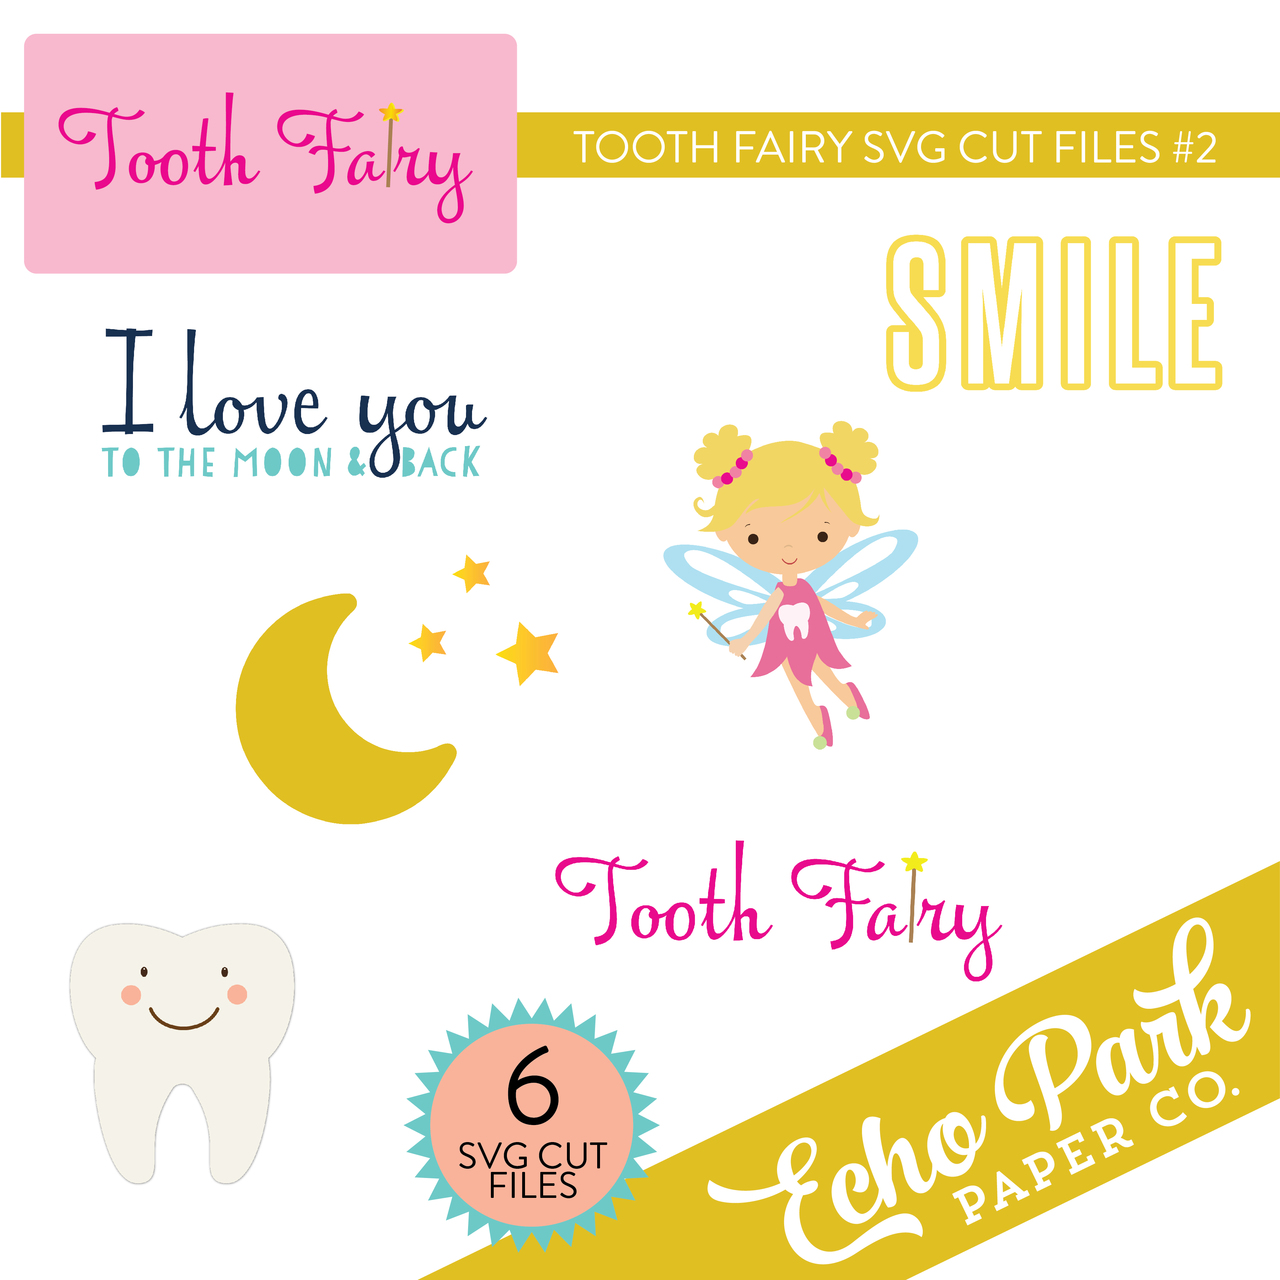 Tooth Fairy SVG Cut Files #2